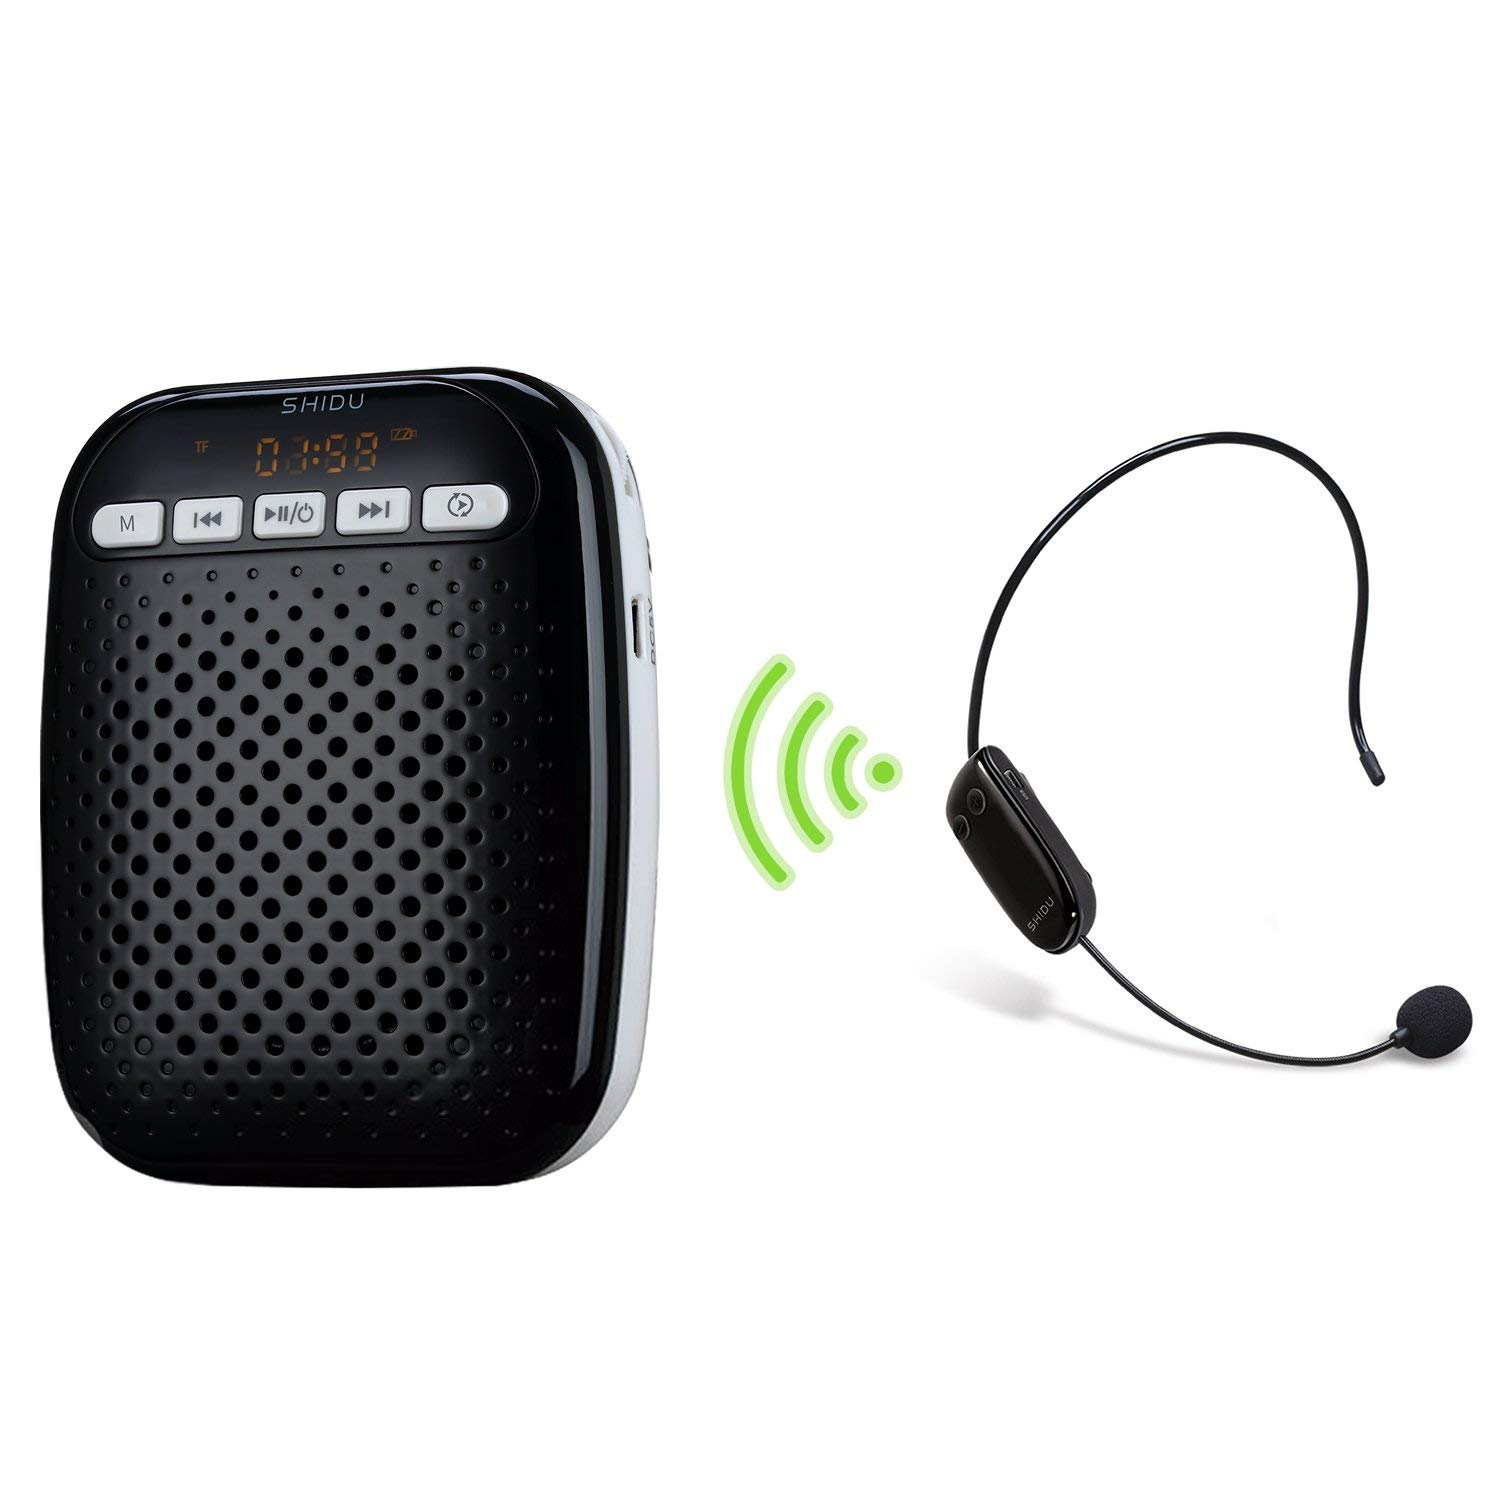 Wirelss Voice Amplifier 10W Portable Pa System with Cordless Microphone Headset Rechargeable Voice Enhancer Personal Speech Amplifier for Teachers, Fitness Instructors - Black & White